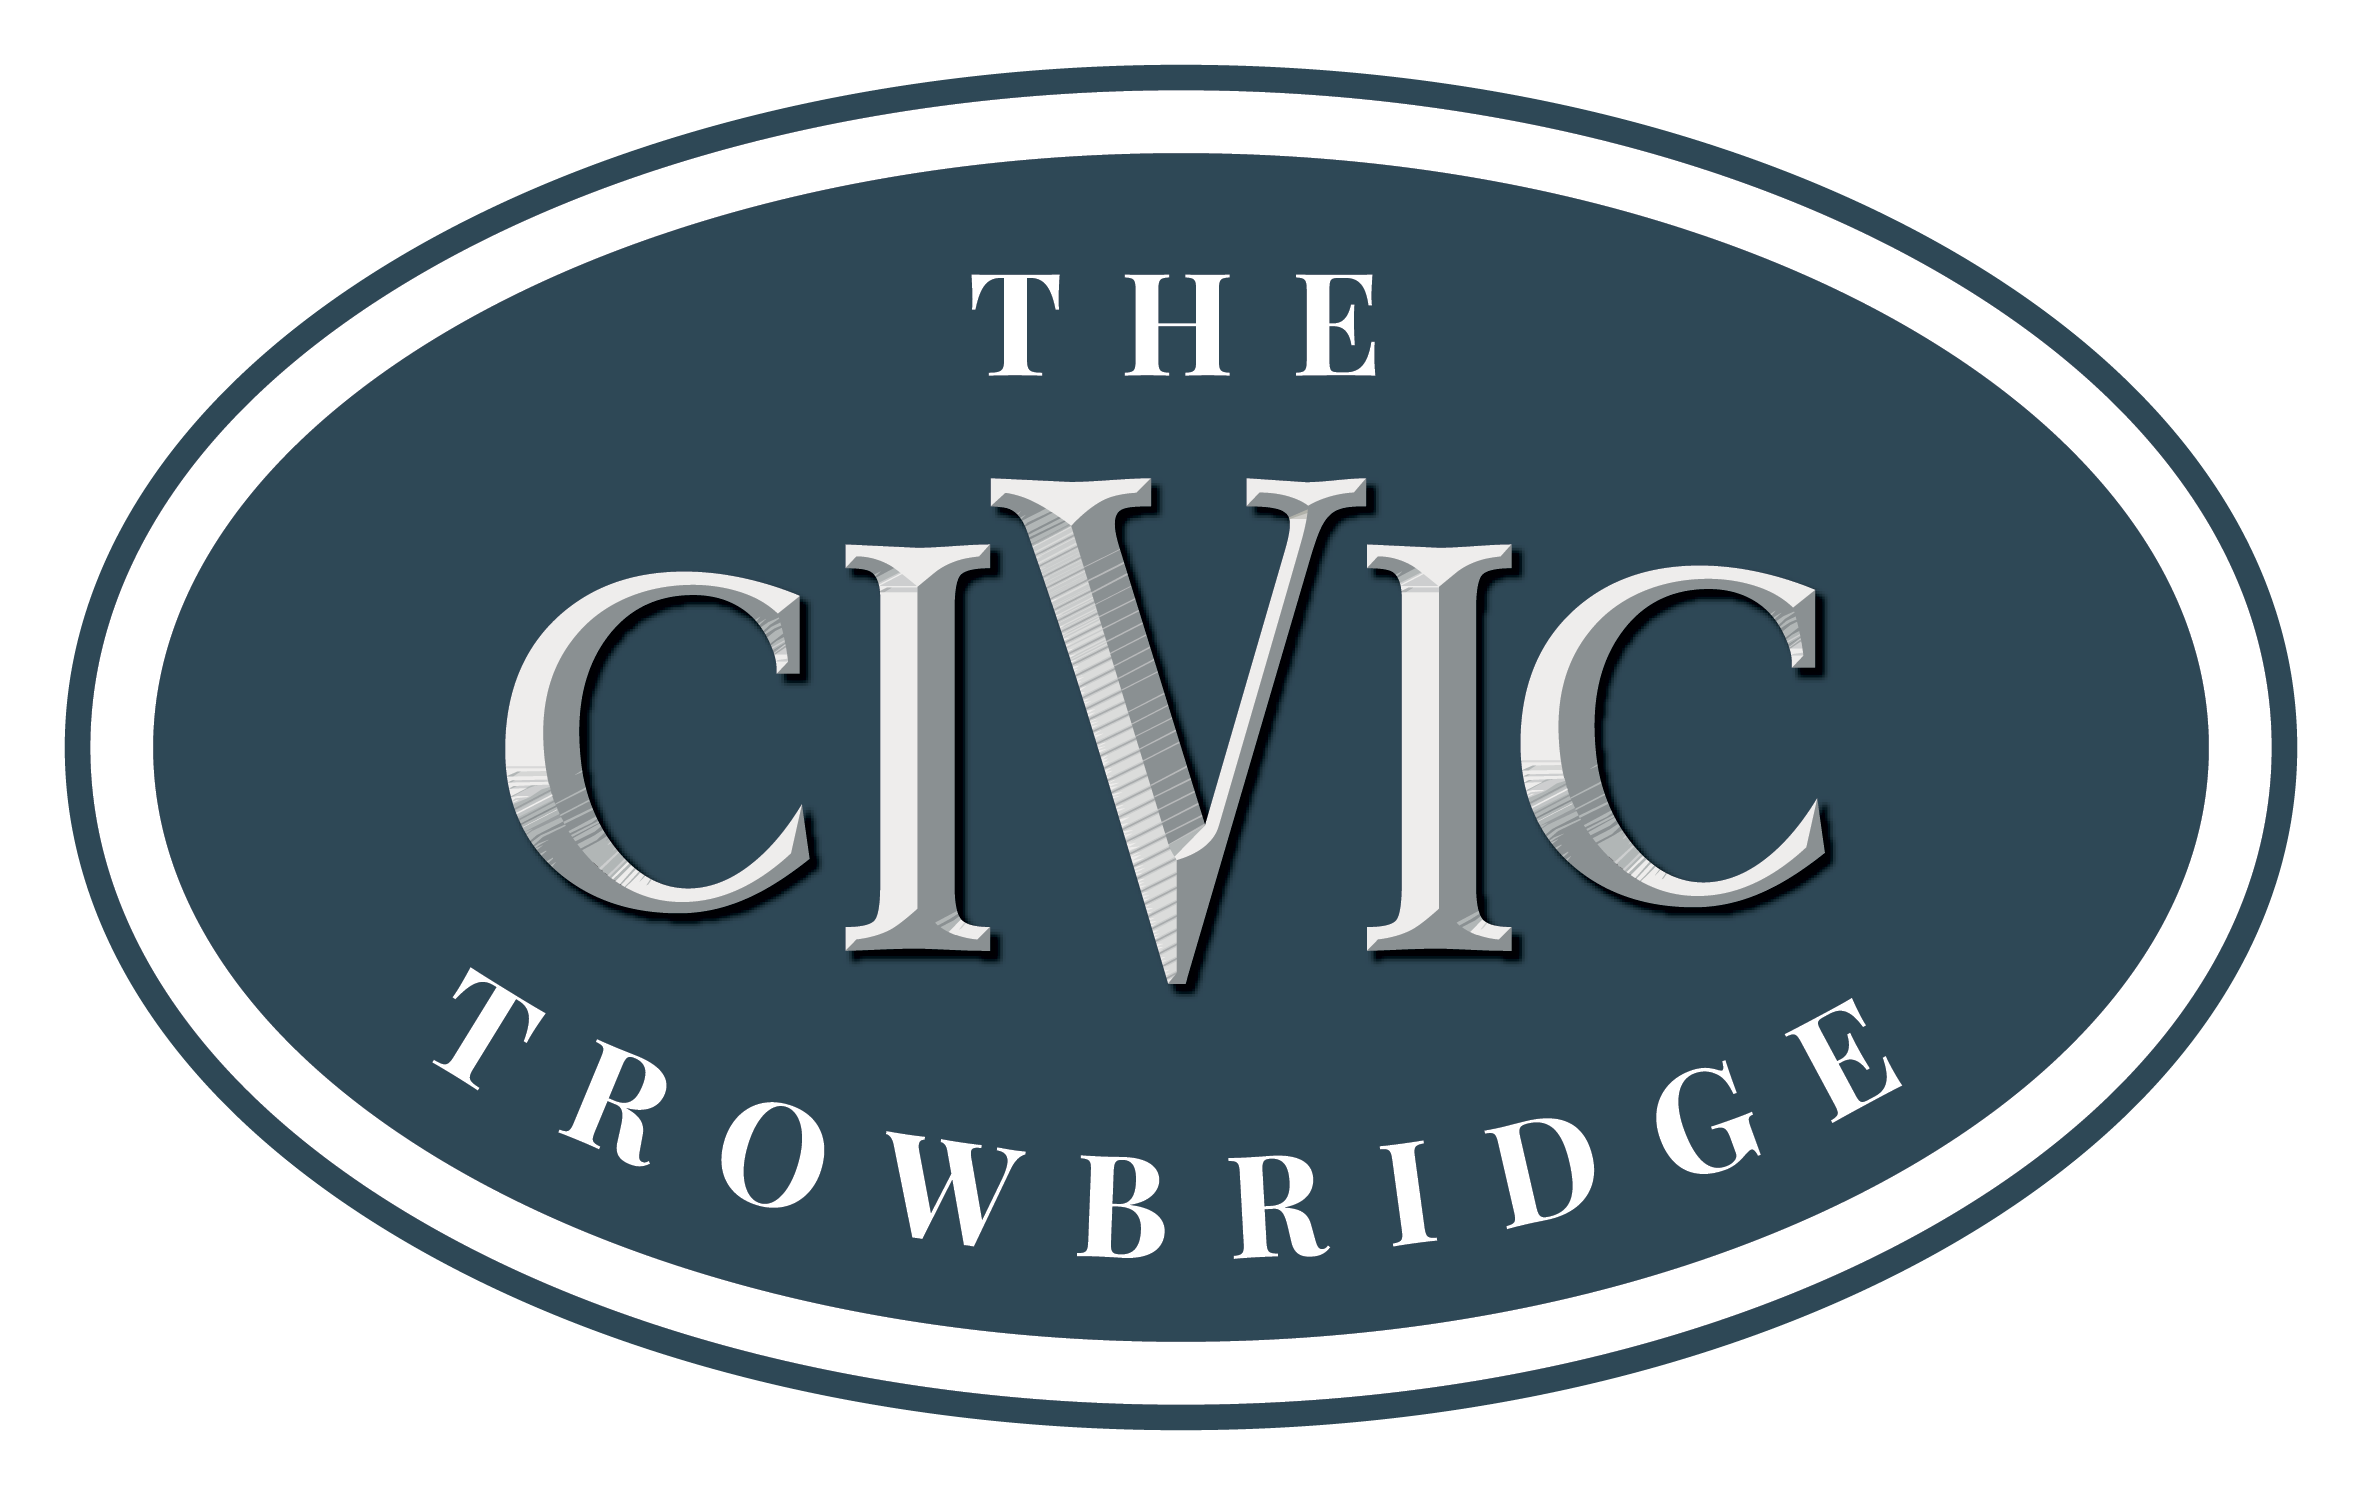 The Civic Trowbridge